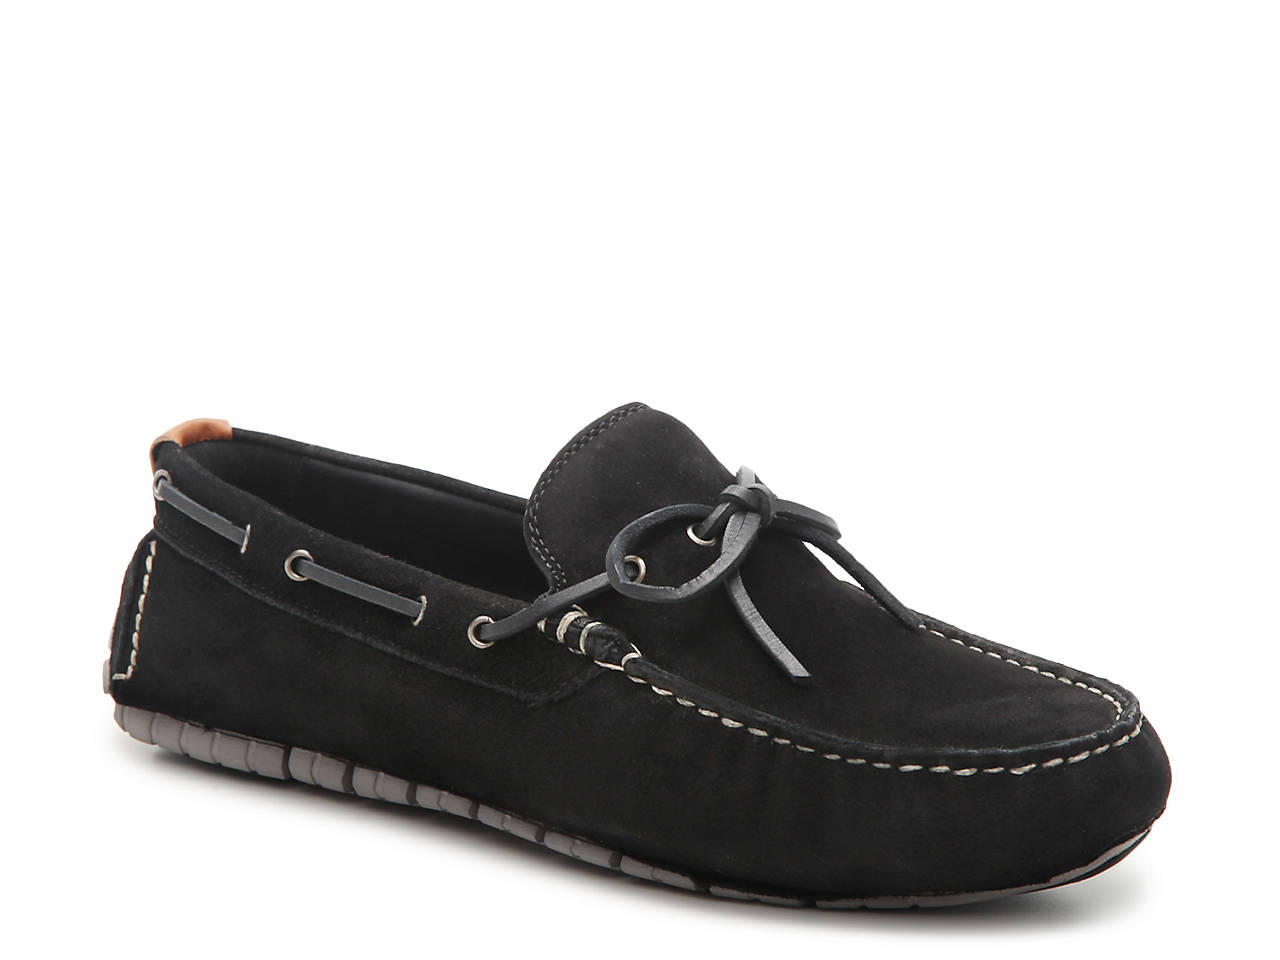 fd1ad576473 Cole Haan Zerogrand Camp Loafer Men s Shoes